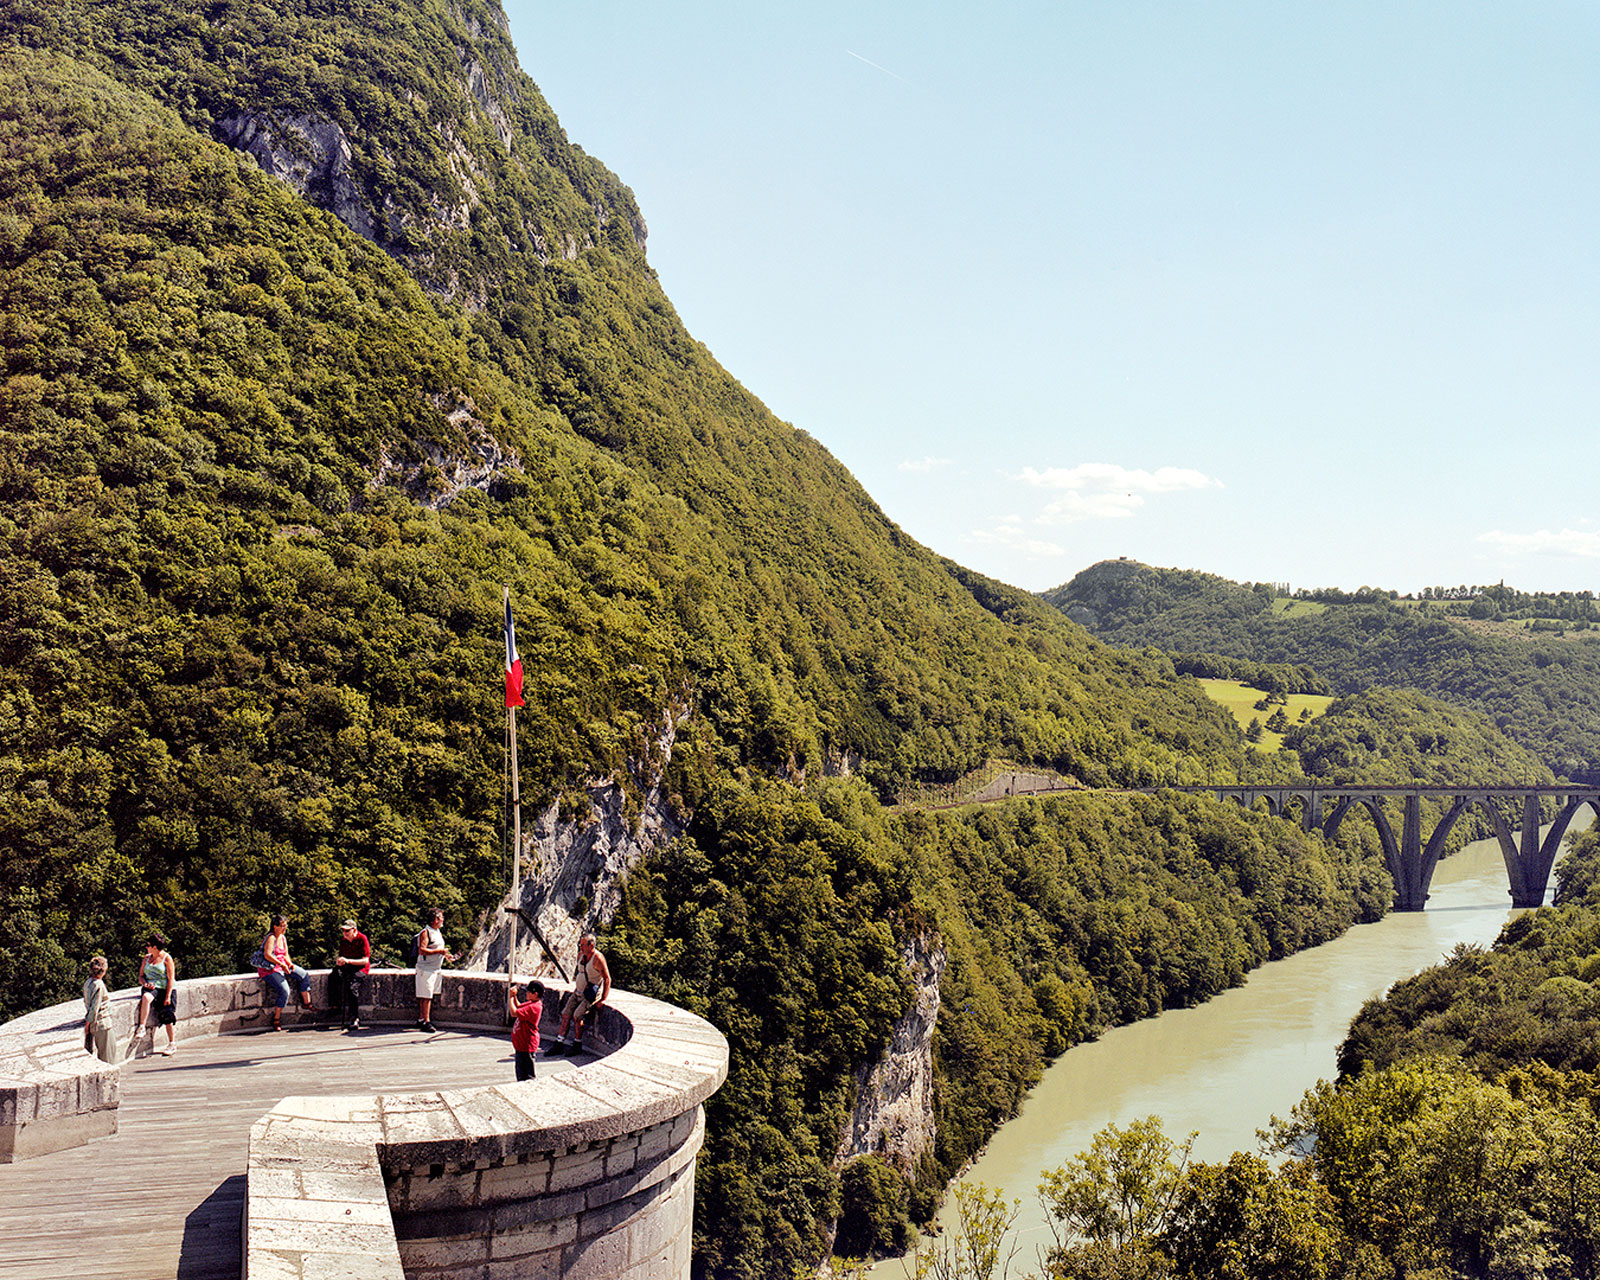 In Photos: Europe's Rhône River Like You've Never Seen It Before